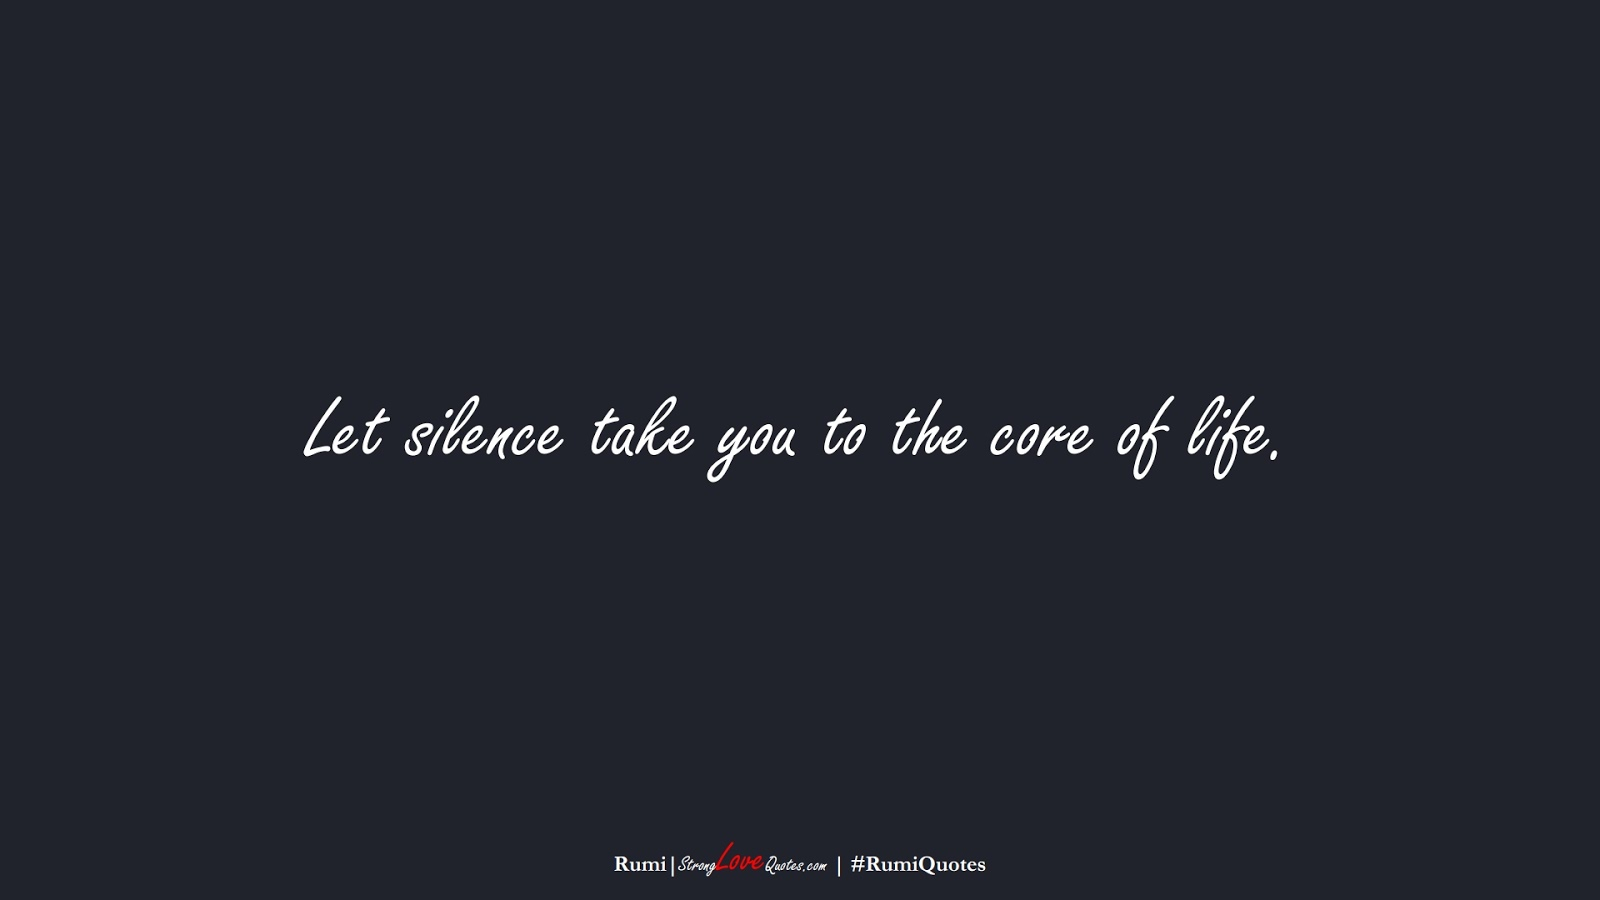 Let silence take you to the core of life. (Rumi);  #RumiQuotes